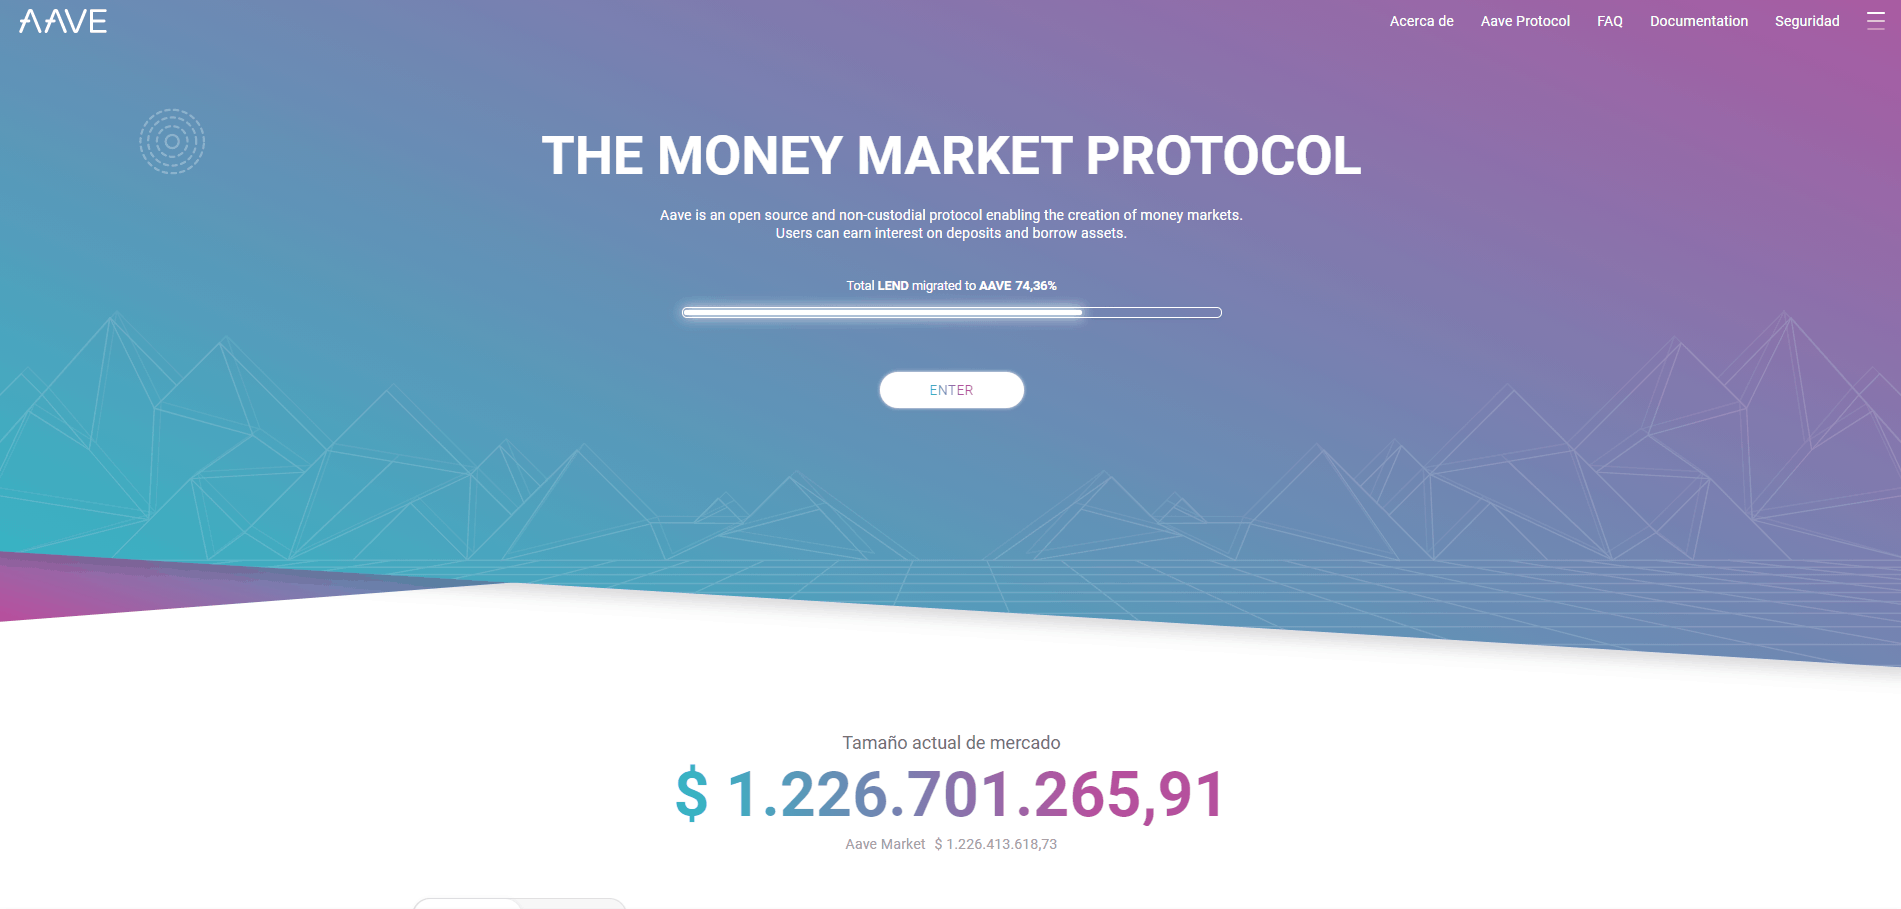 AAVE protocol